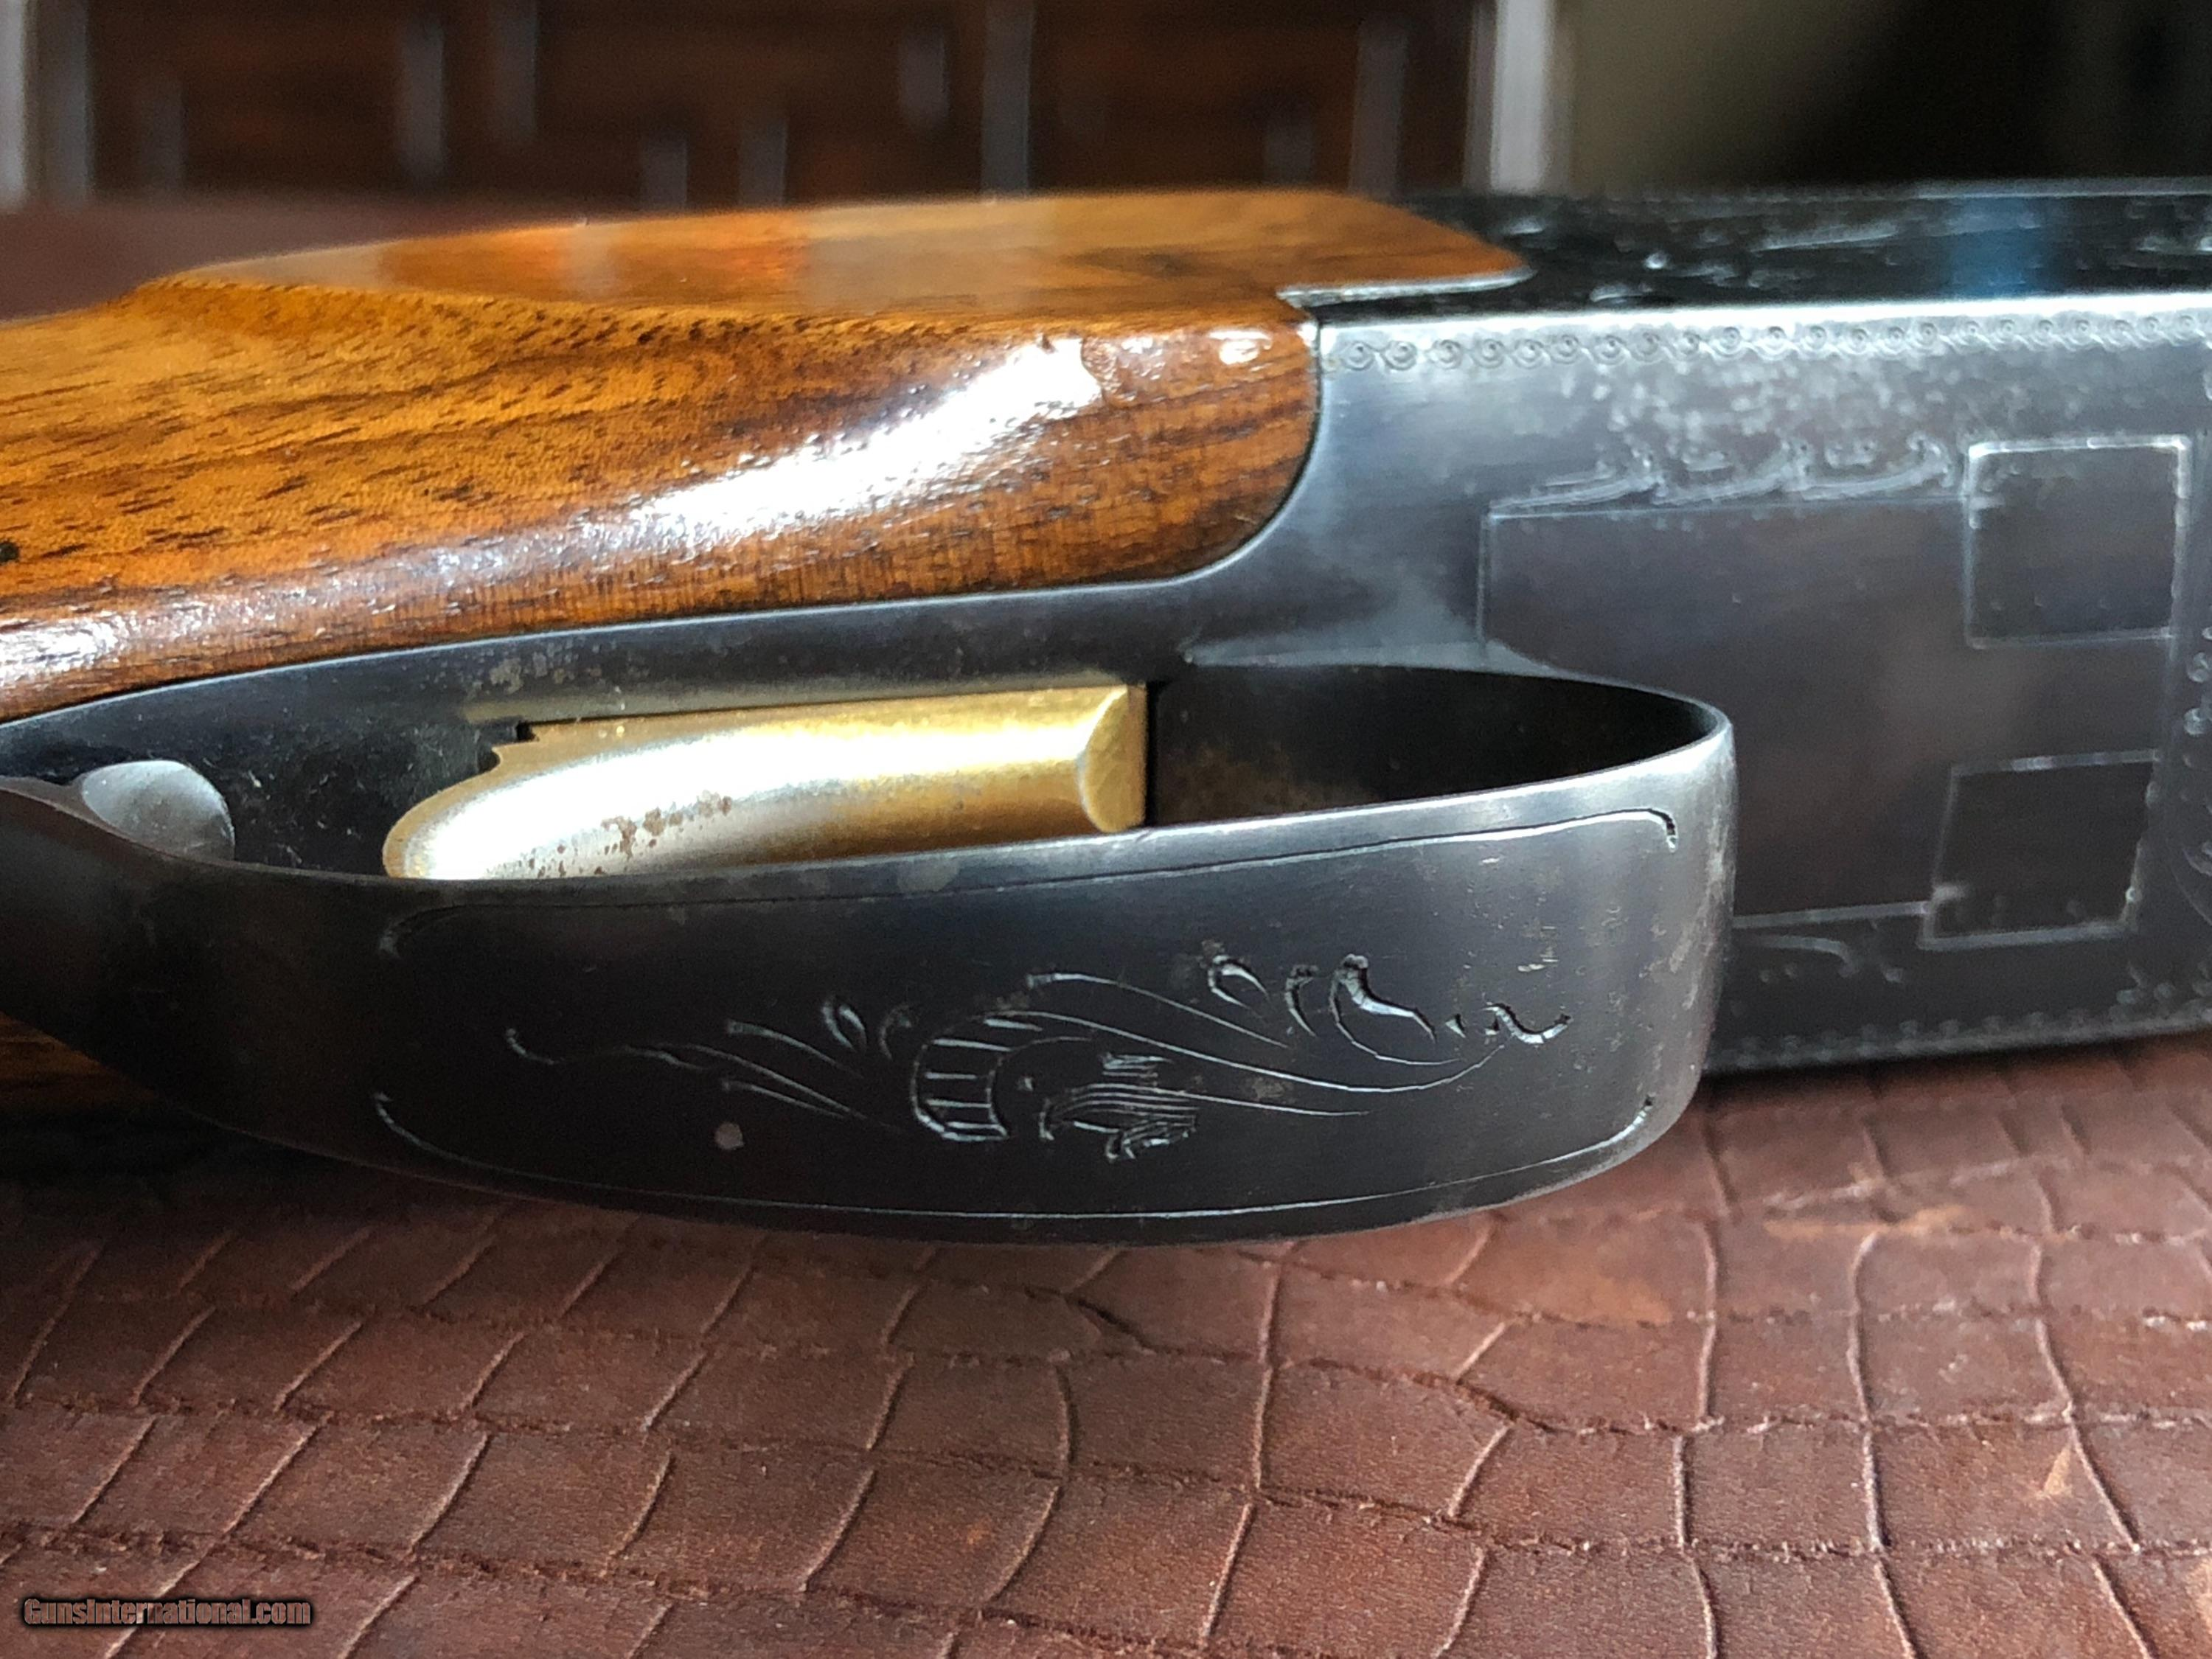 SOLD*****Browning Superposed Grade 1 - 20 gauge - field ready!